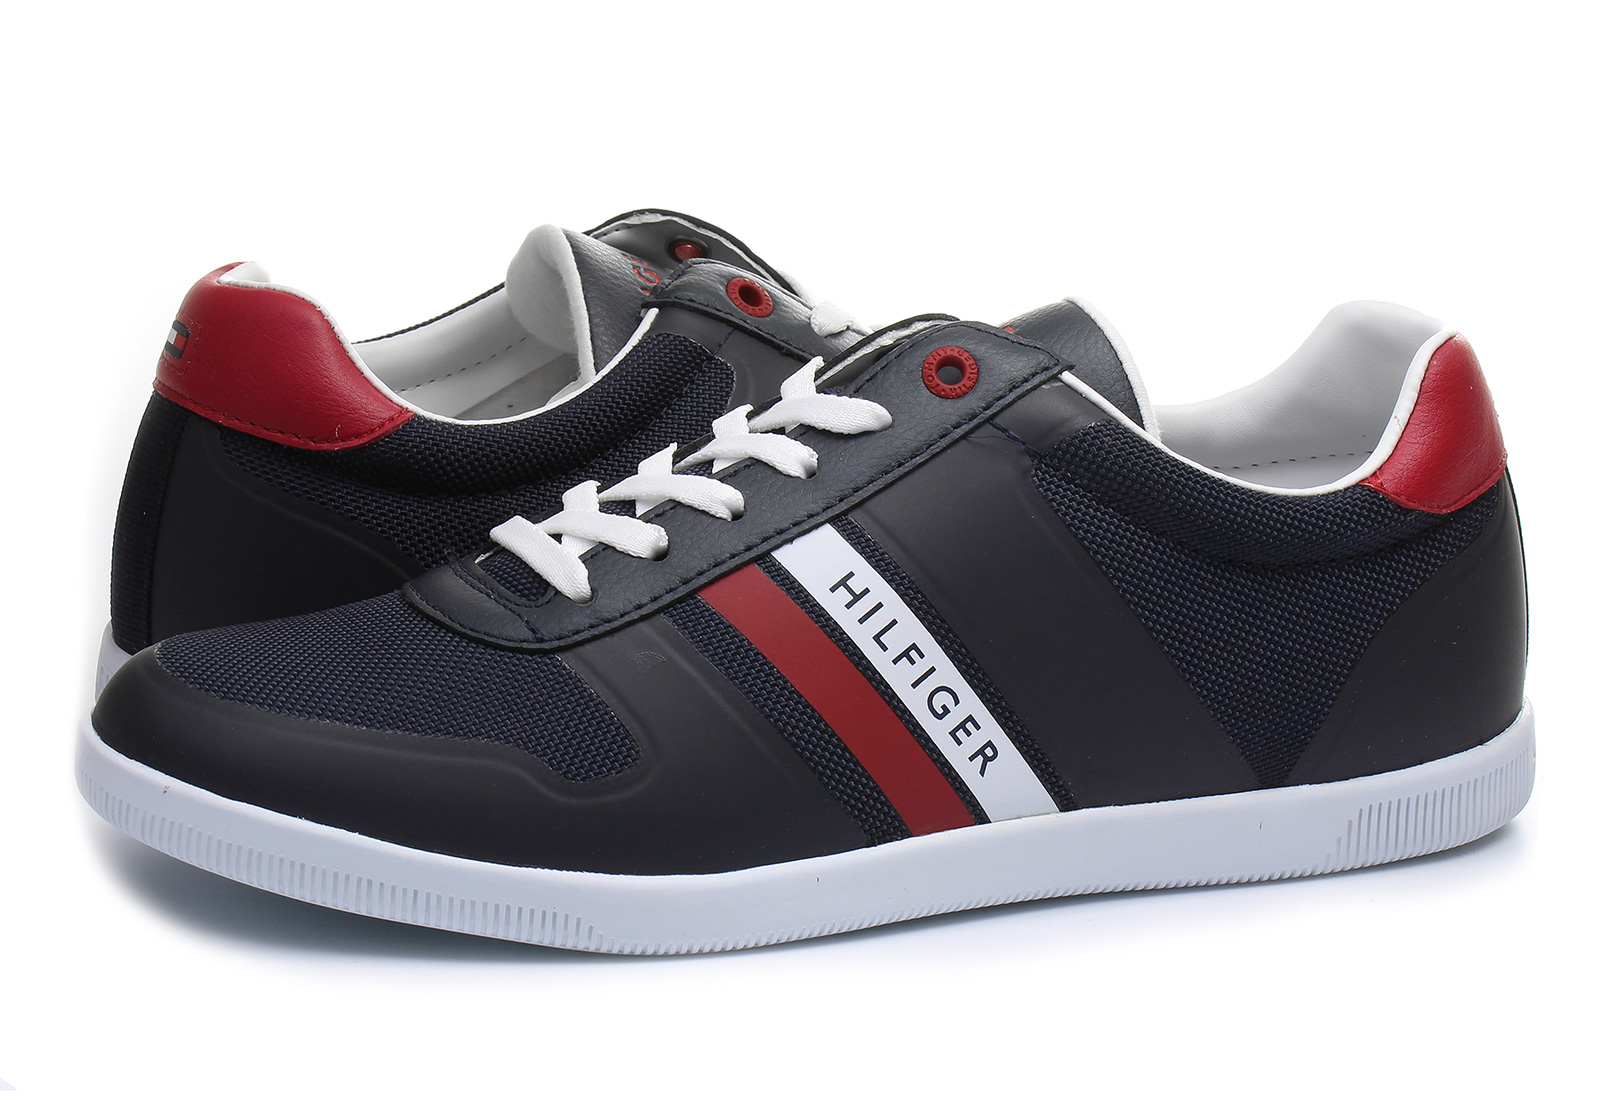 tommy hilfiger shoes denzel 9d 16f 1664 403 online shop for sneakers shoes and boots. Black Bedroom Furniture Sets. Home Design Ideas